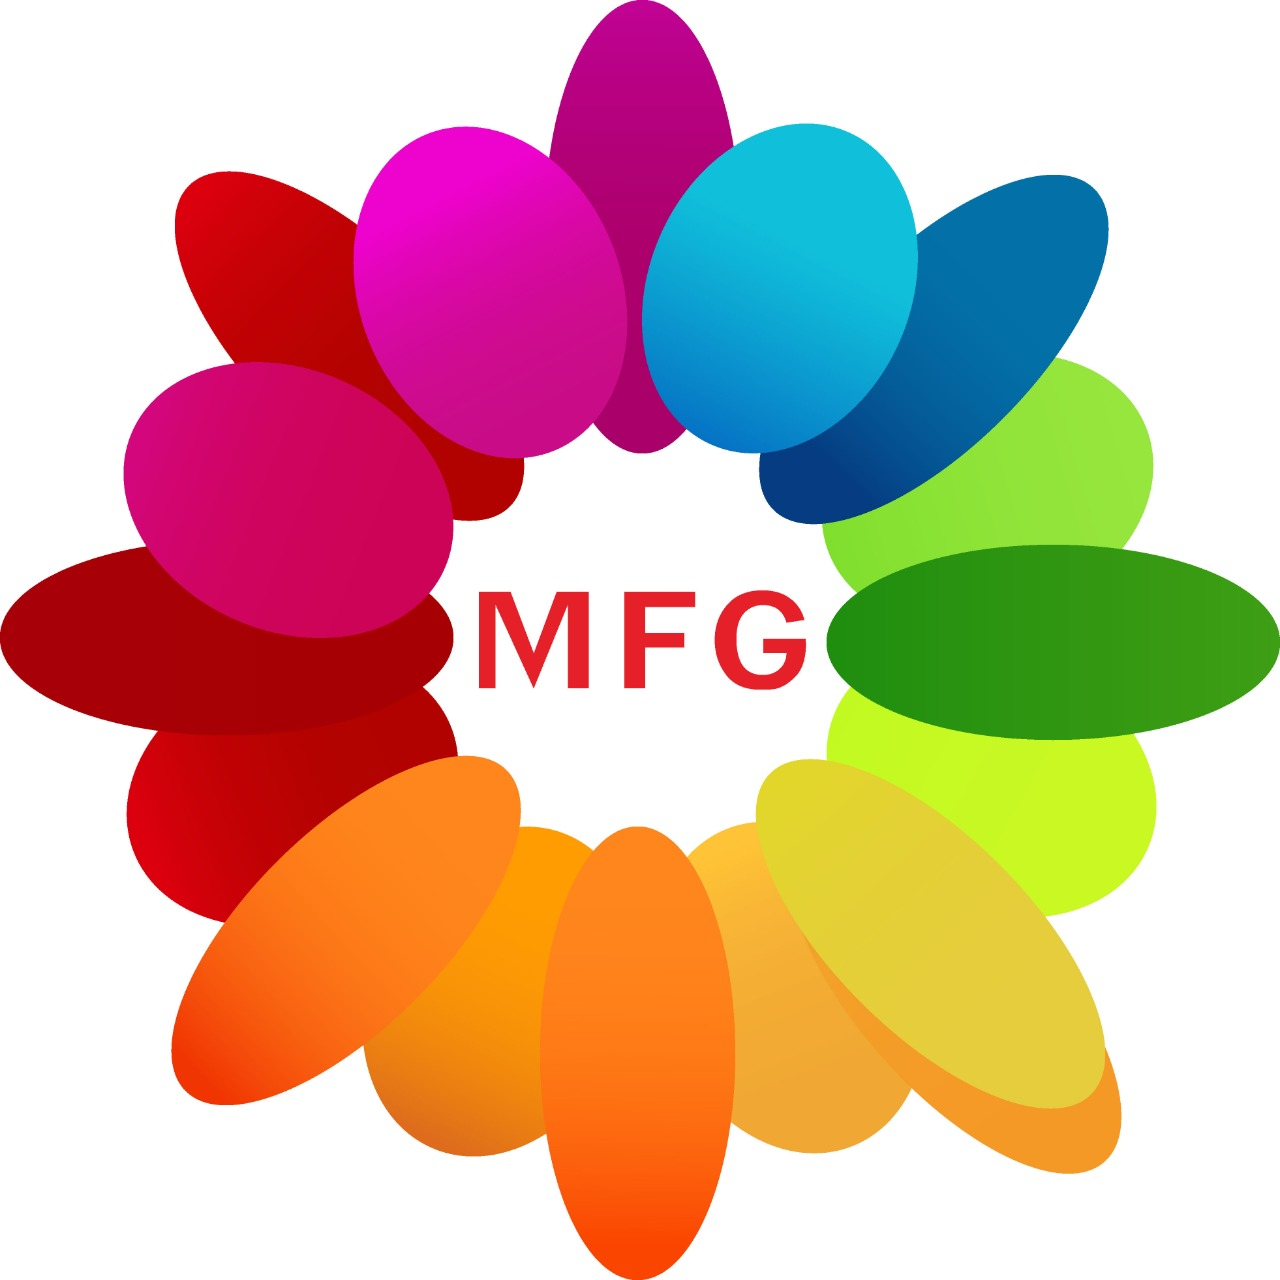 1 kg black forest with 1 feet height teddy bear with single red rose